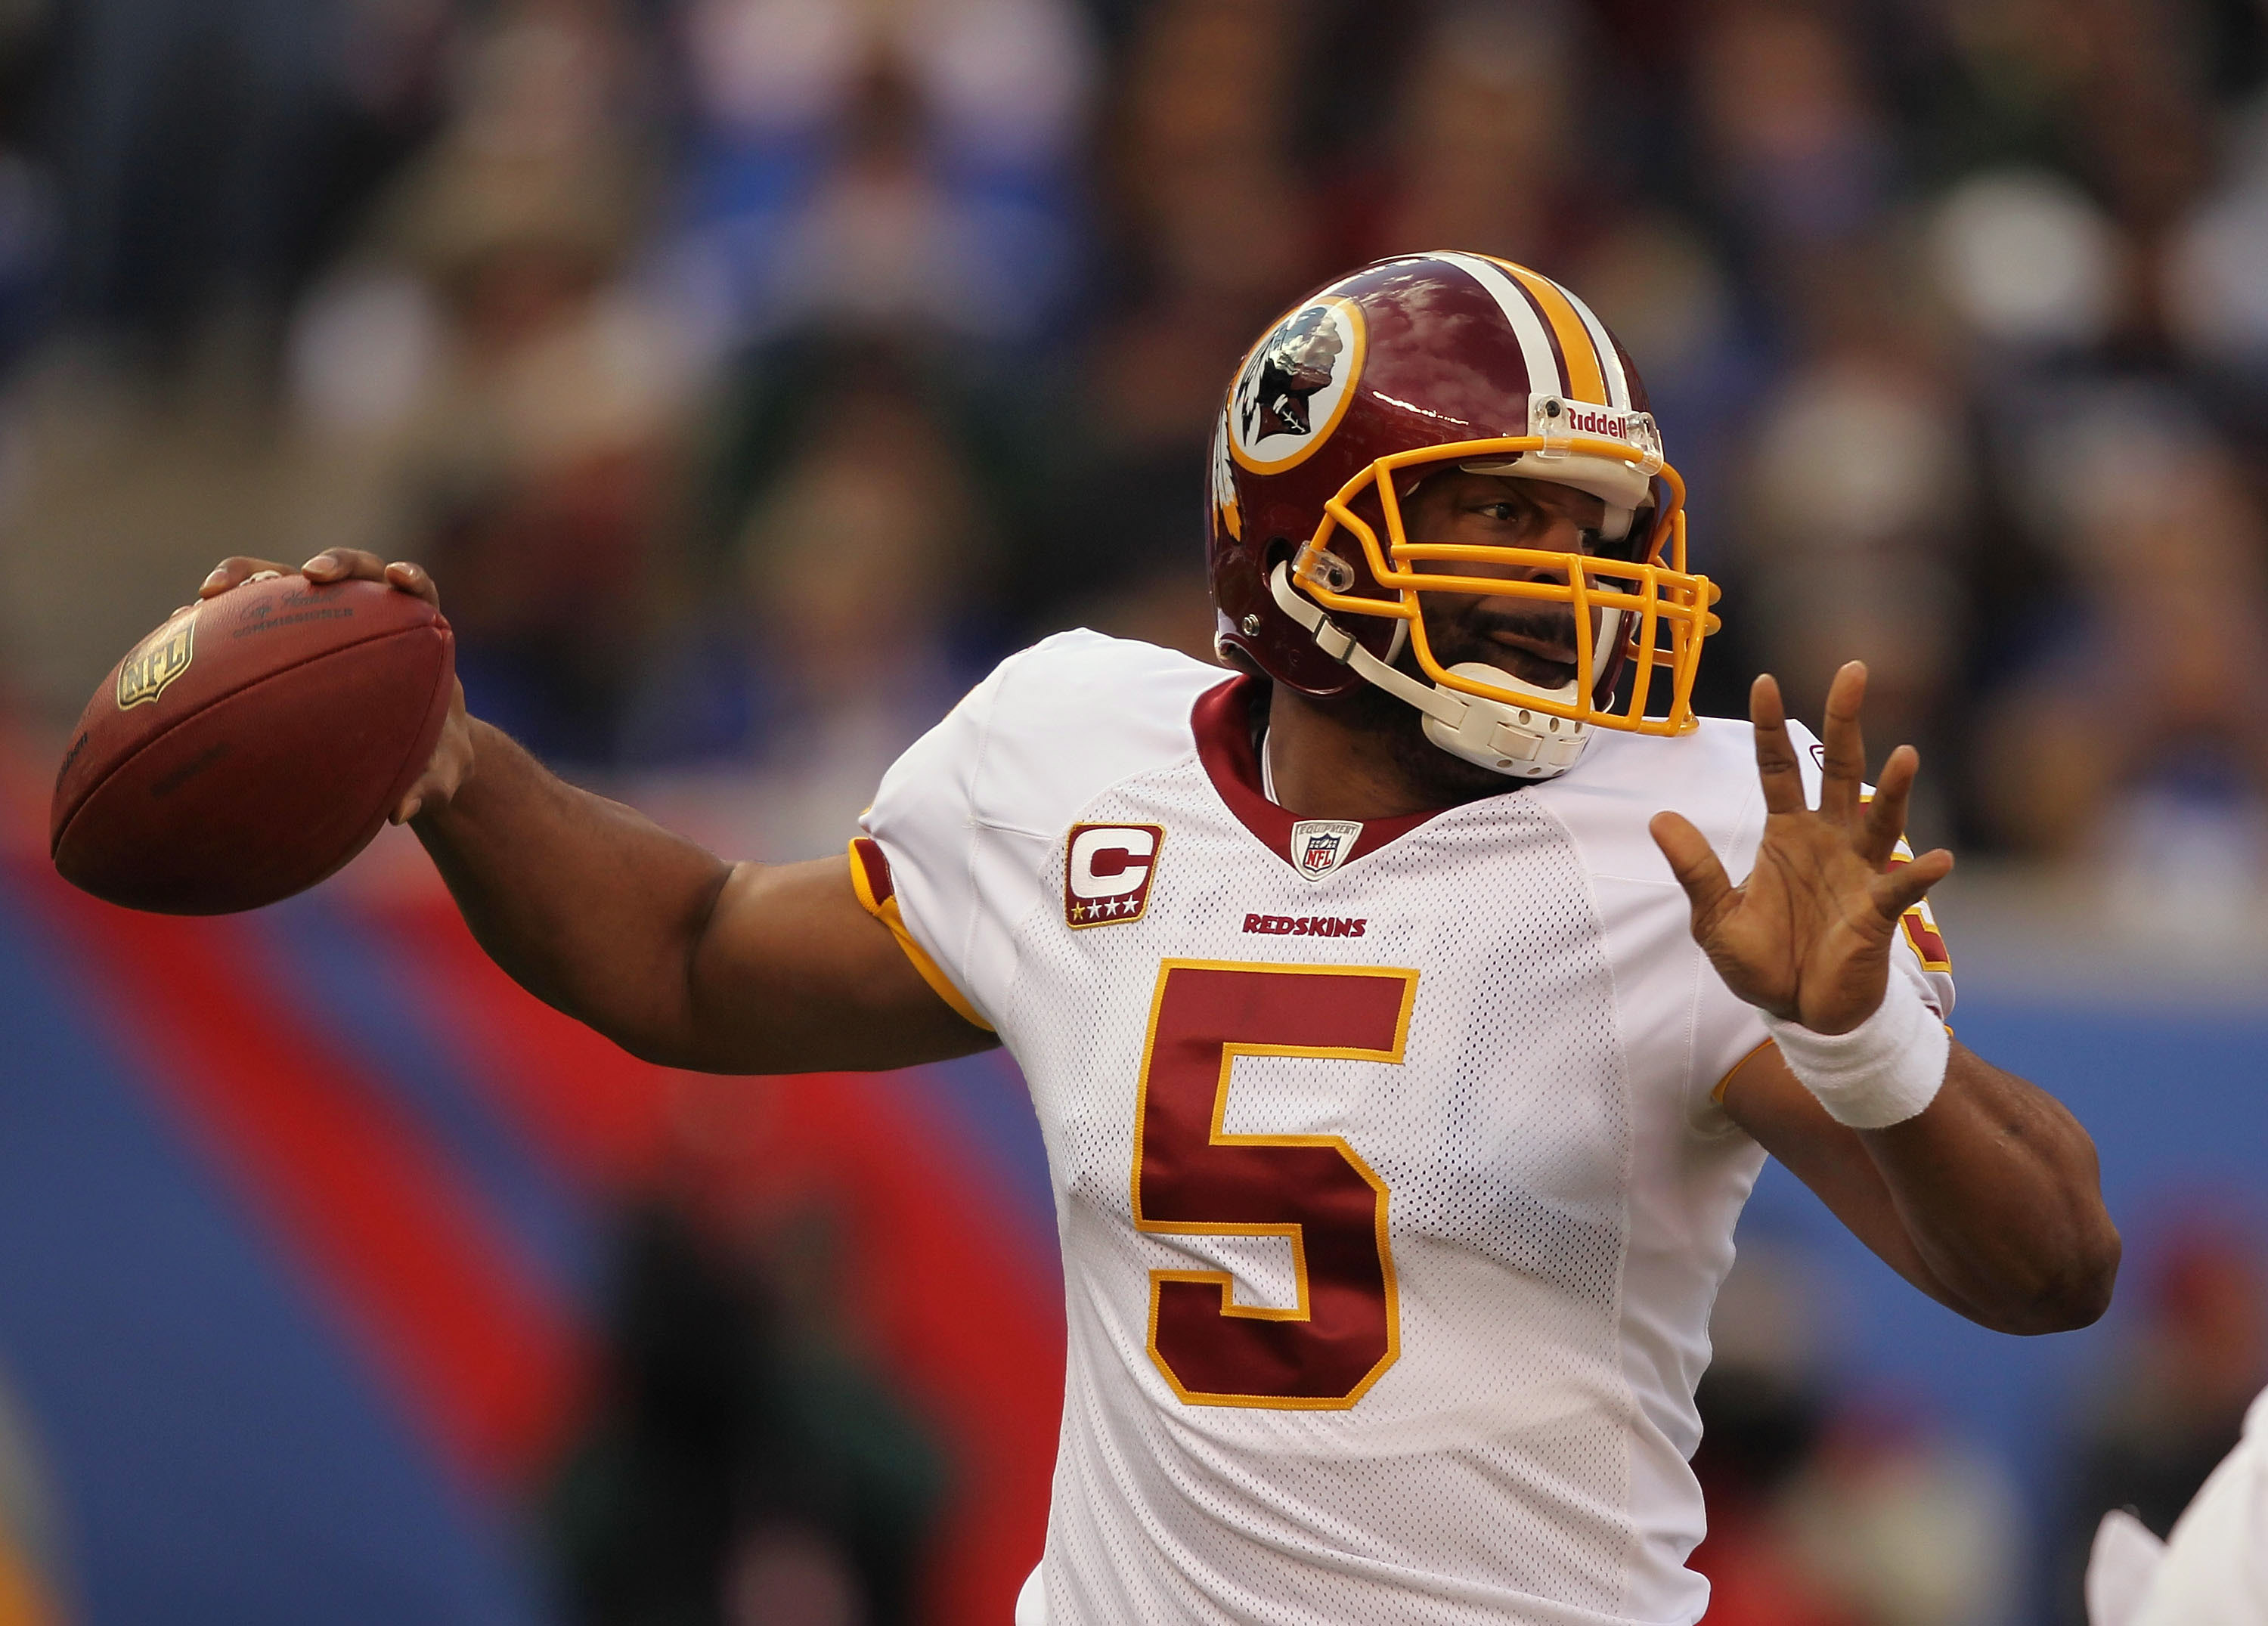 EAST RUTHERFORD, NJ - DECEMBER 05:  Donovan McNabb #5 of the Washington Redskins passes the  ball against the New York Giants  apply pressure during their game on December 5, 2010 at The New Meadowlands Stadium in East Rutherford, New Jersey.  (Photo by A